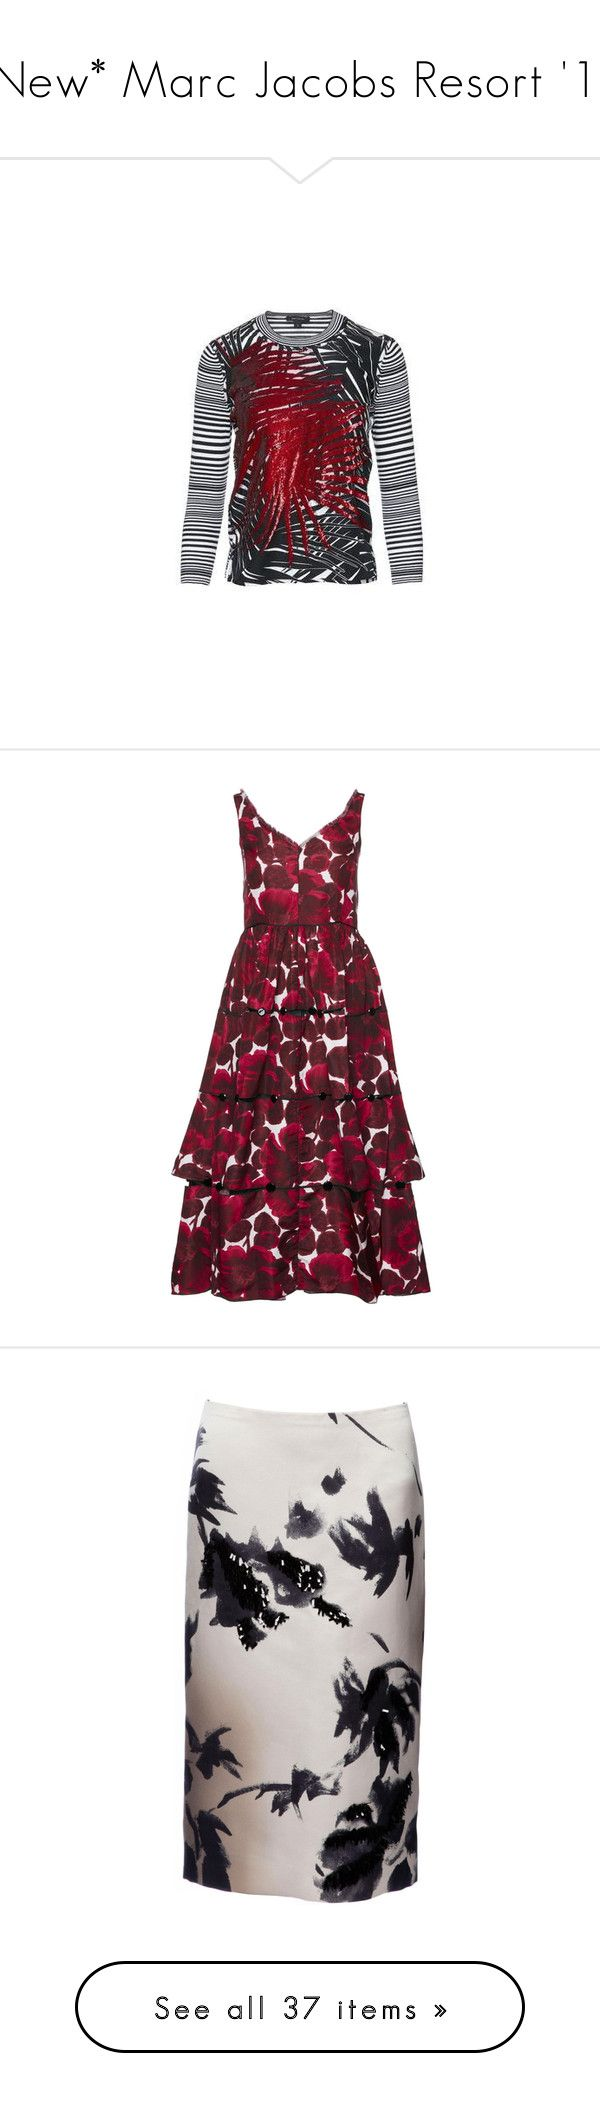 """""""*New* Marc Jacobs Resort '16"""" by marcjacobs ❤ liked on Polyvore featuring dresses, print dress, red sequin dress, red dress, wet look dress, polka dot dress, skirts, sequin pencil skirt, floral print skirt and floral knee length skirt"""